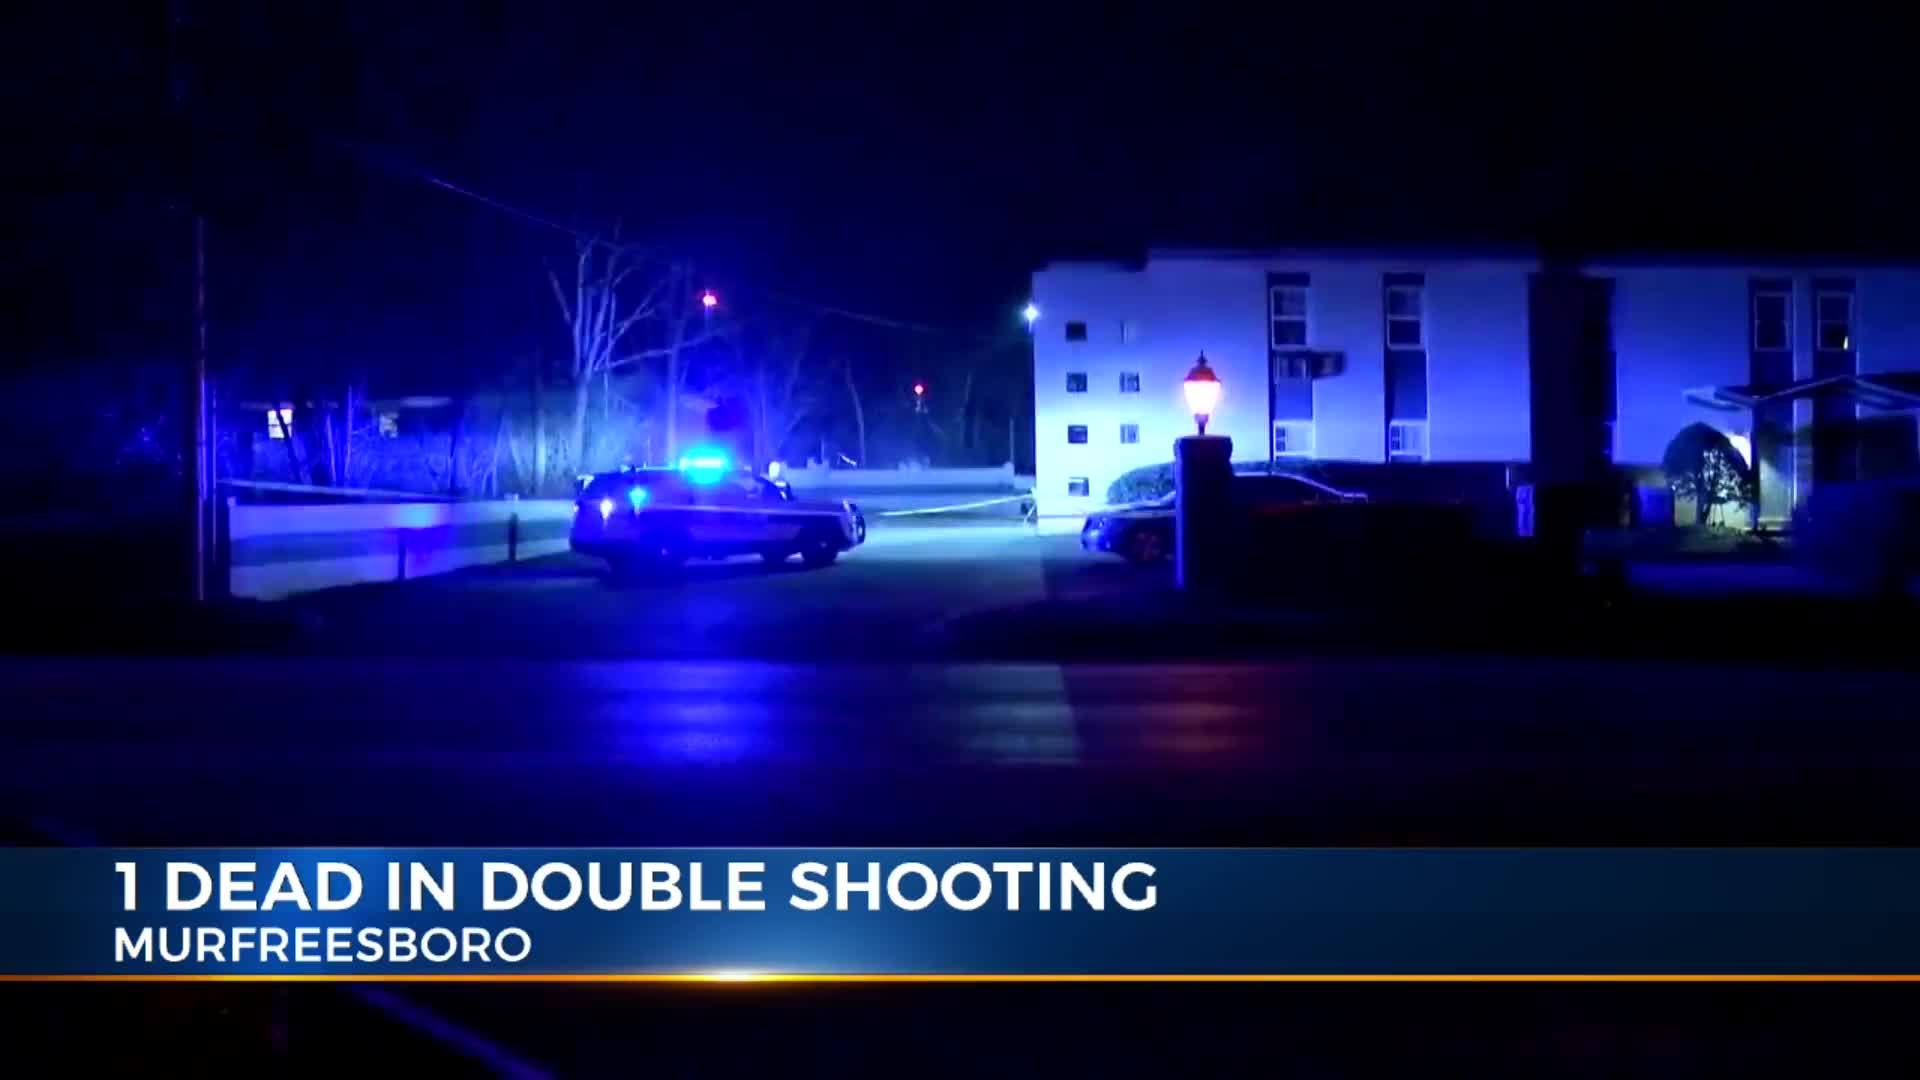 Police working to identify dead man in bizarre Murfreesboro shooting